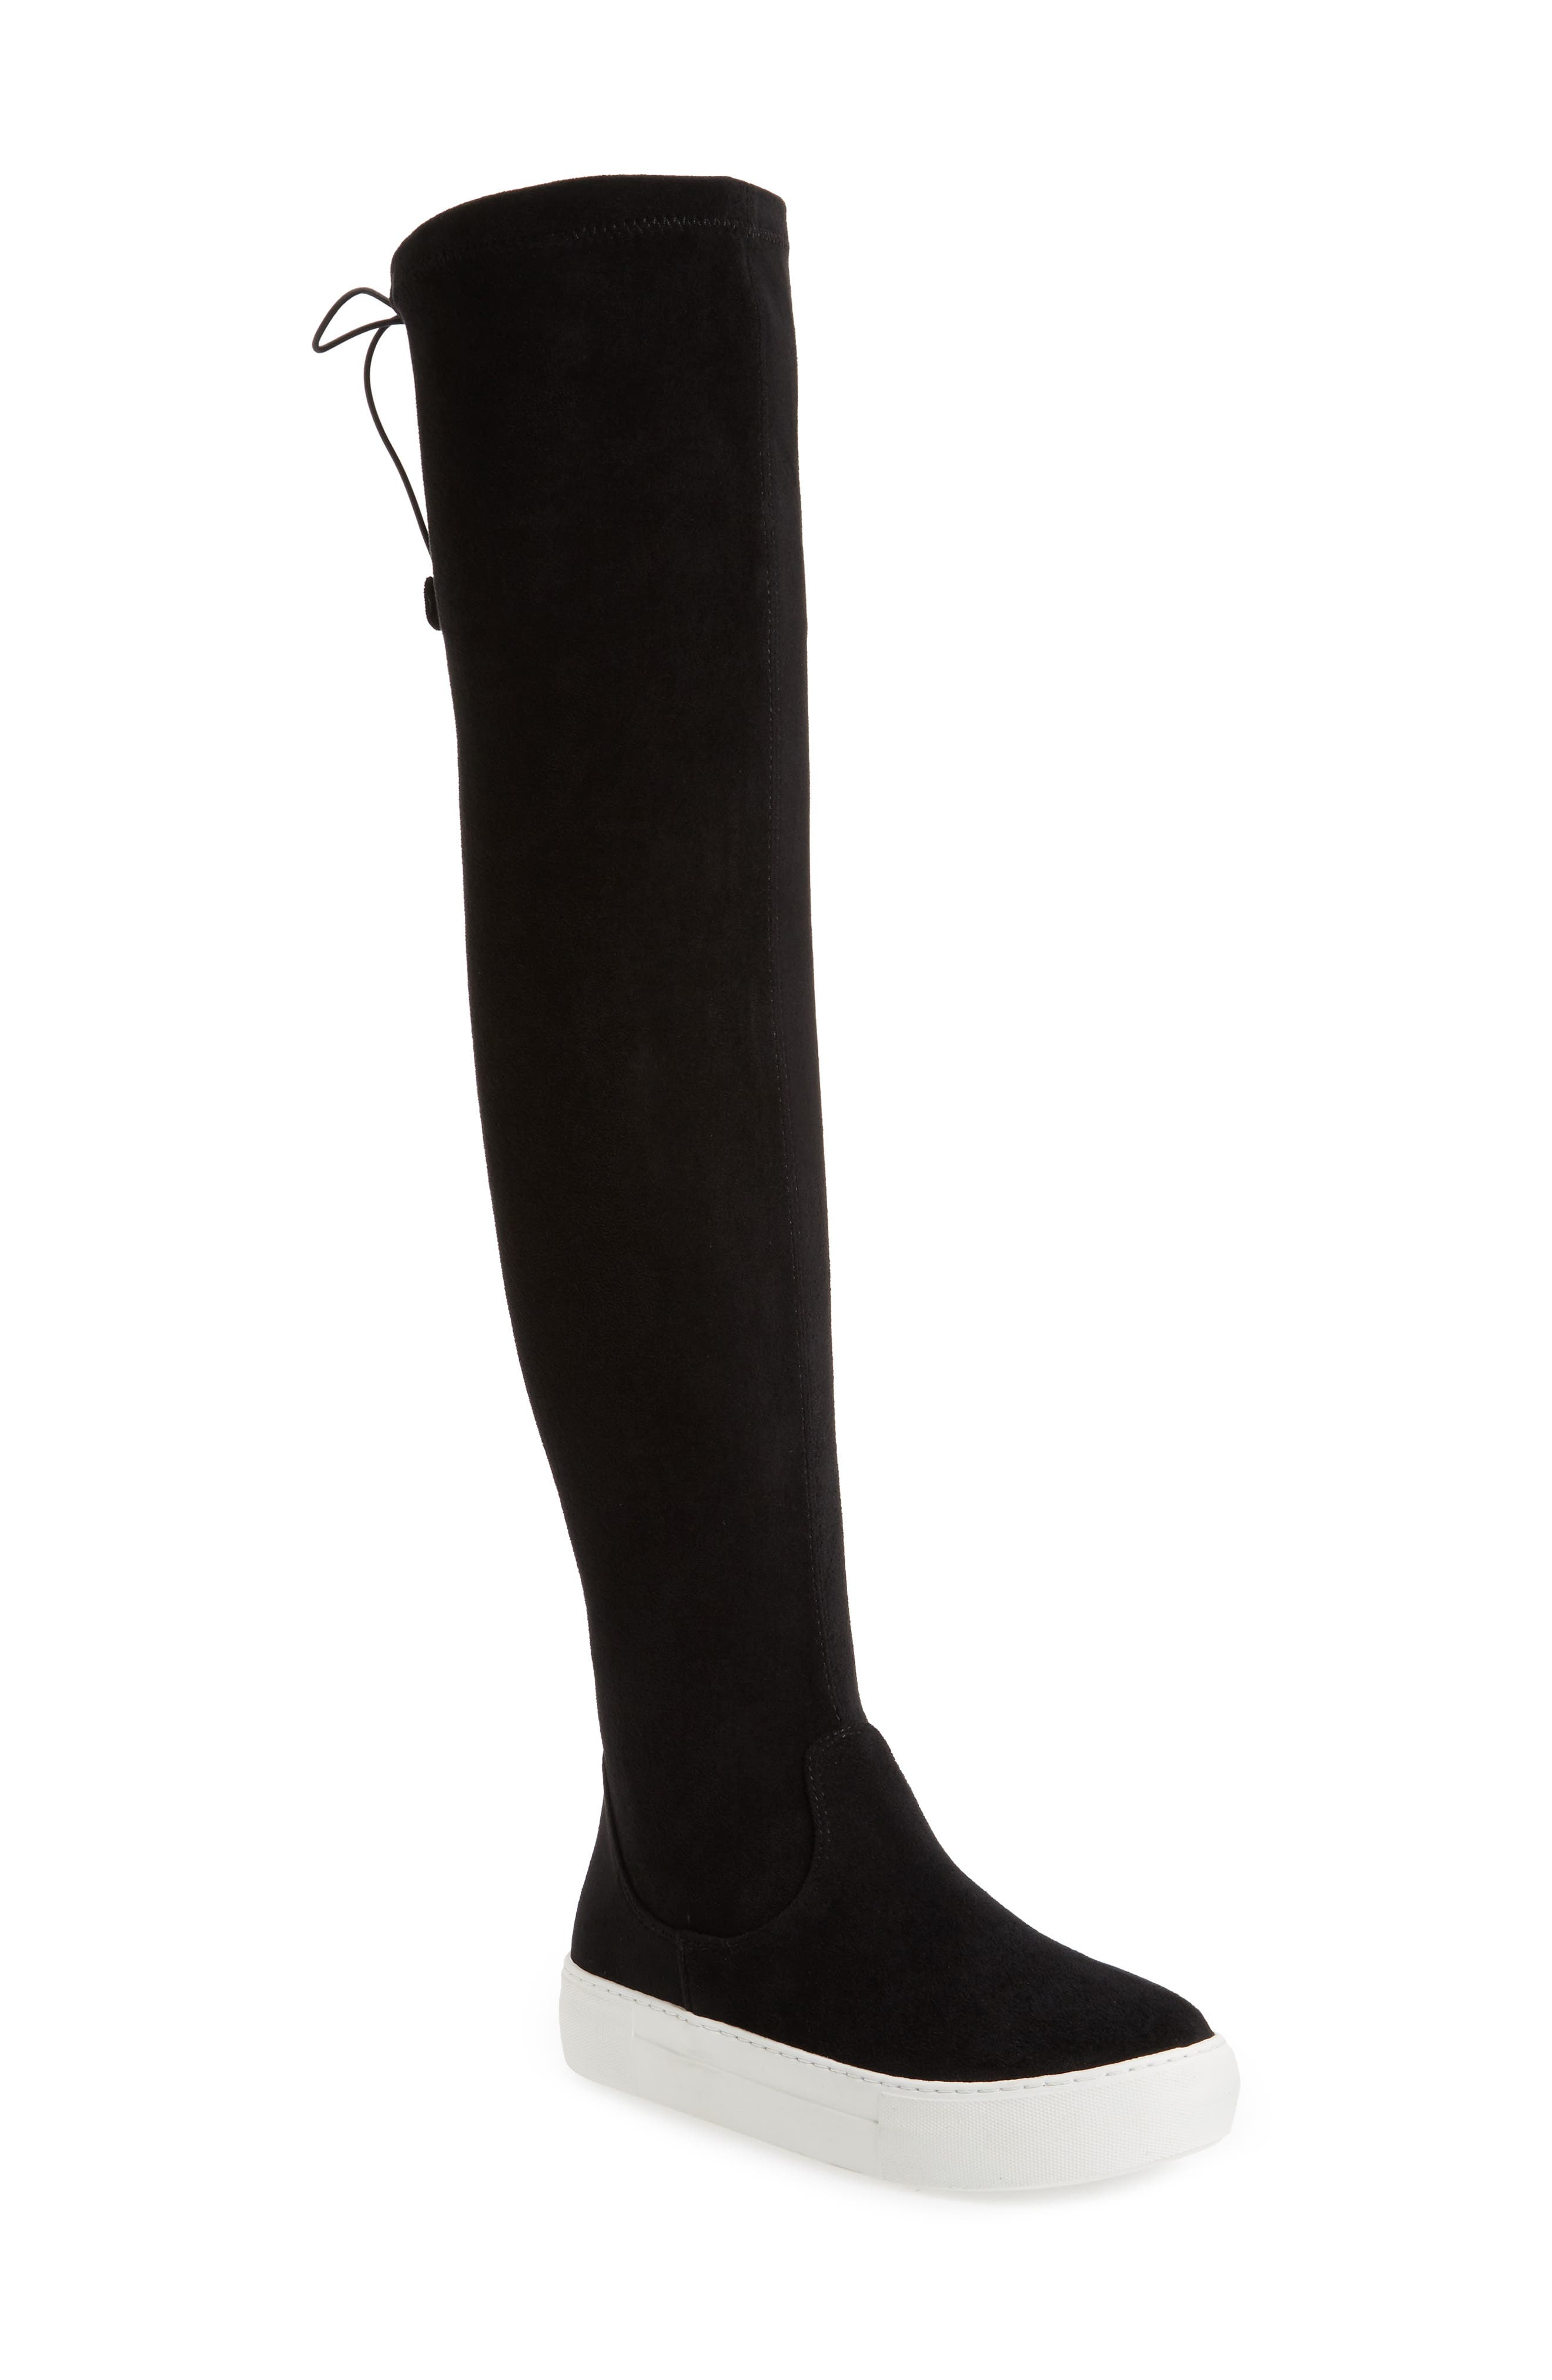 JSlides Ary Over the Knee Boot (Women